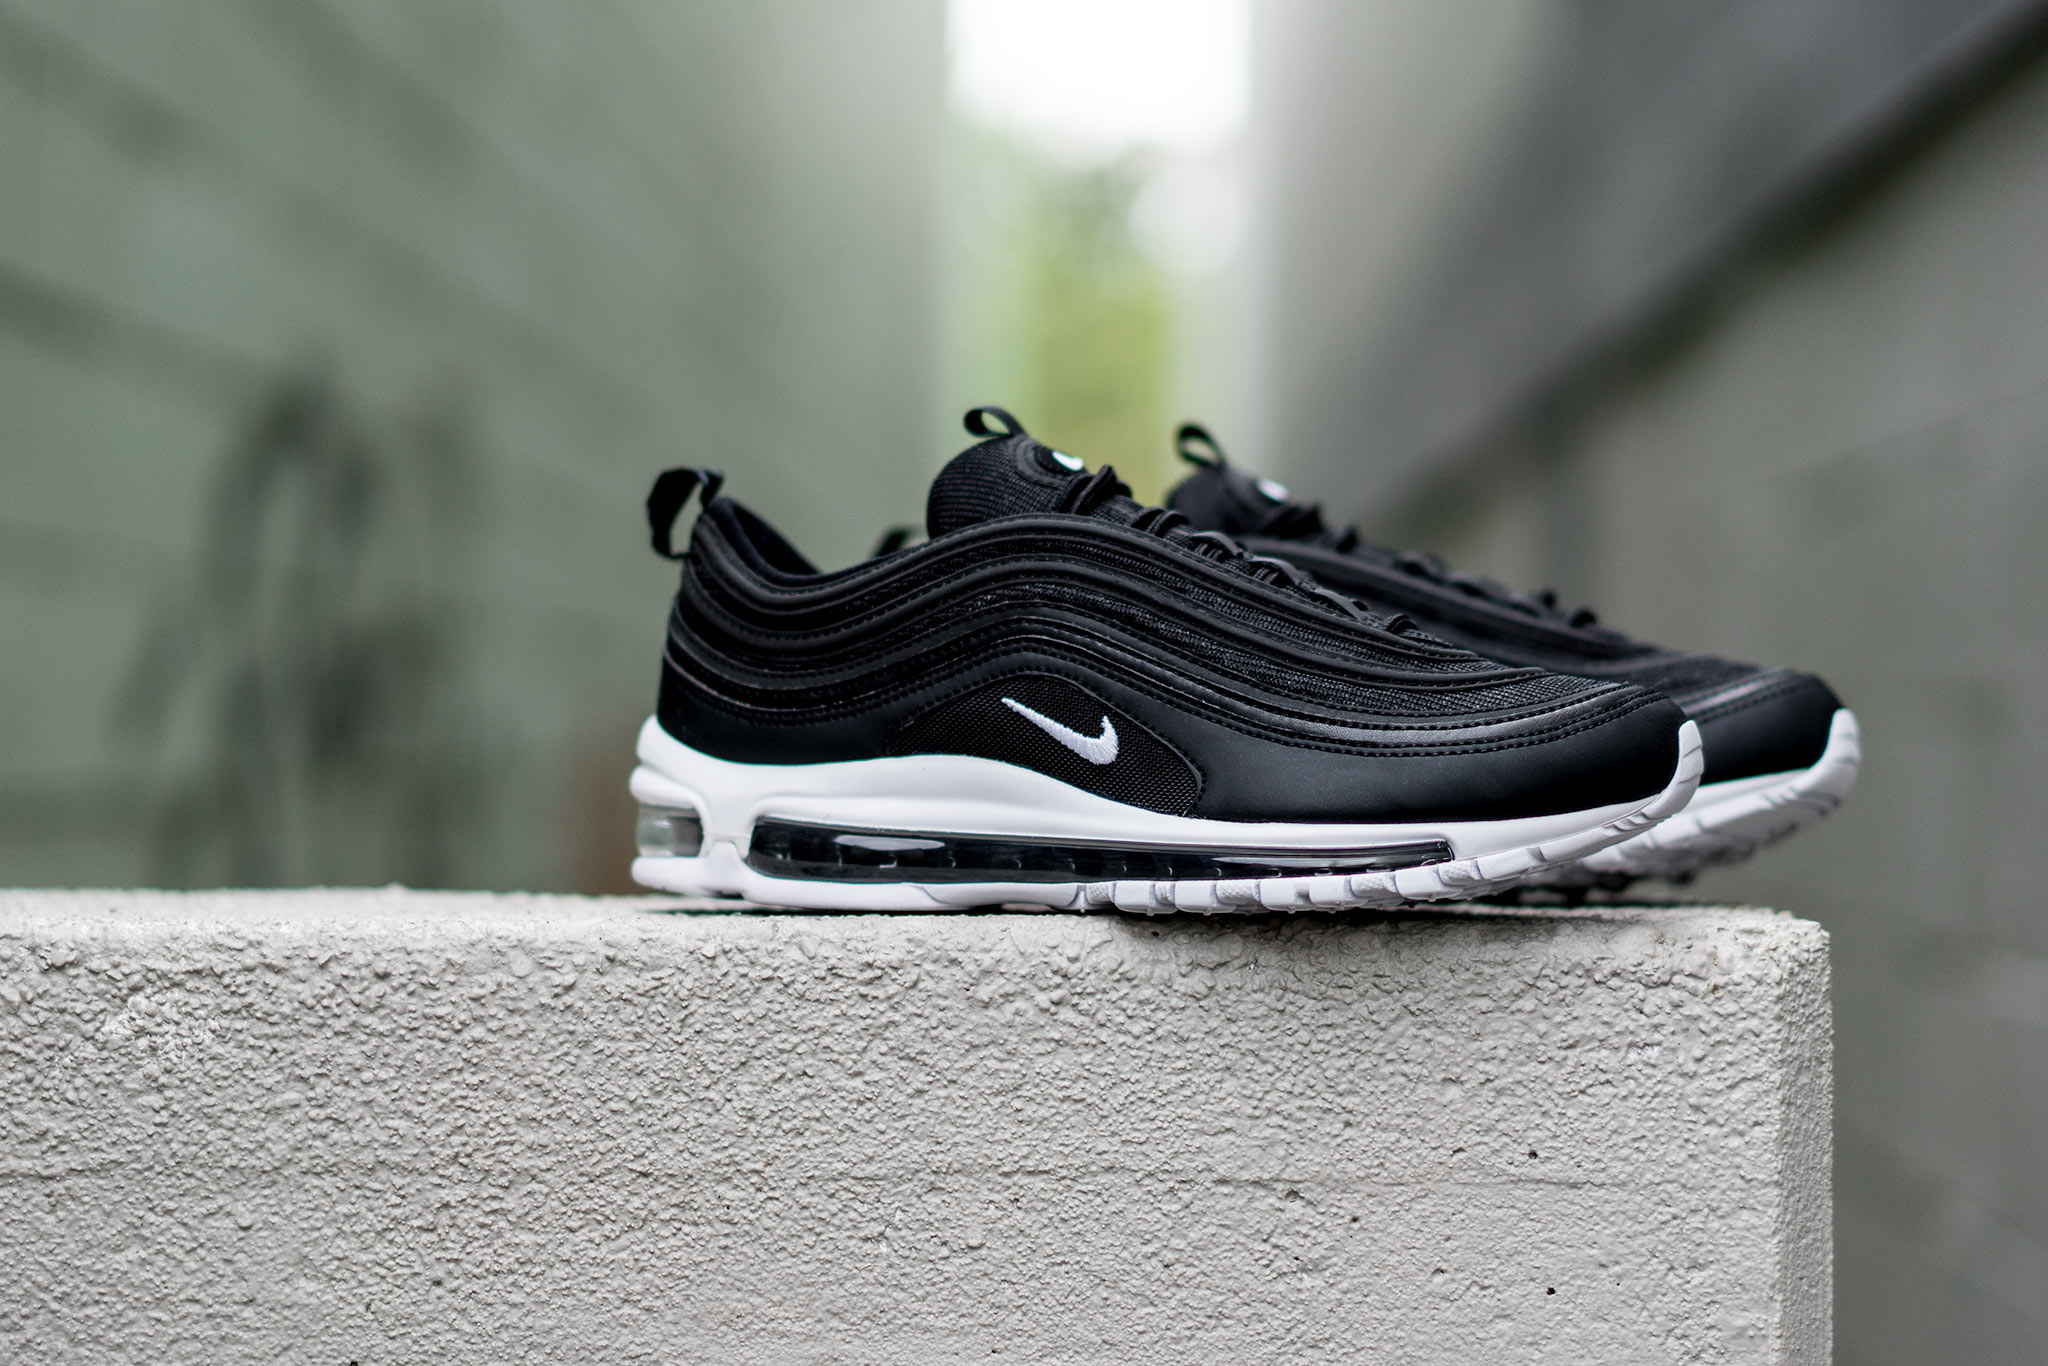 huge discount f8be1 2a00e Nike Air Max 97 OG Black/White | Release Date: 08.01.17 | HAVEN